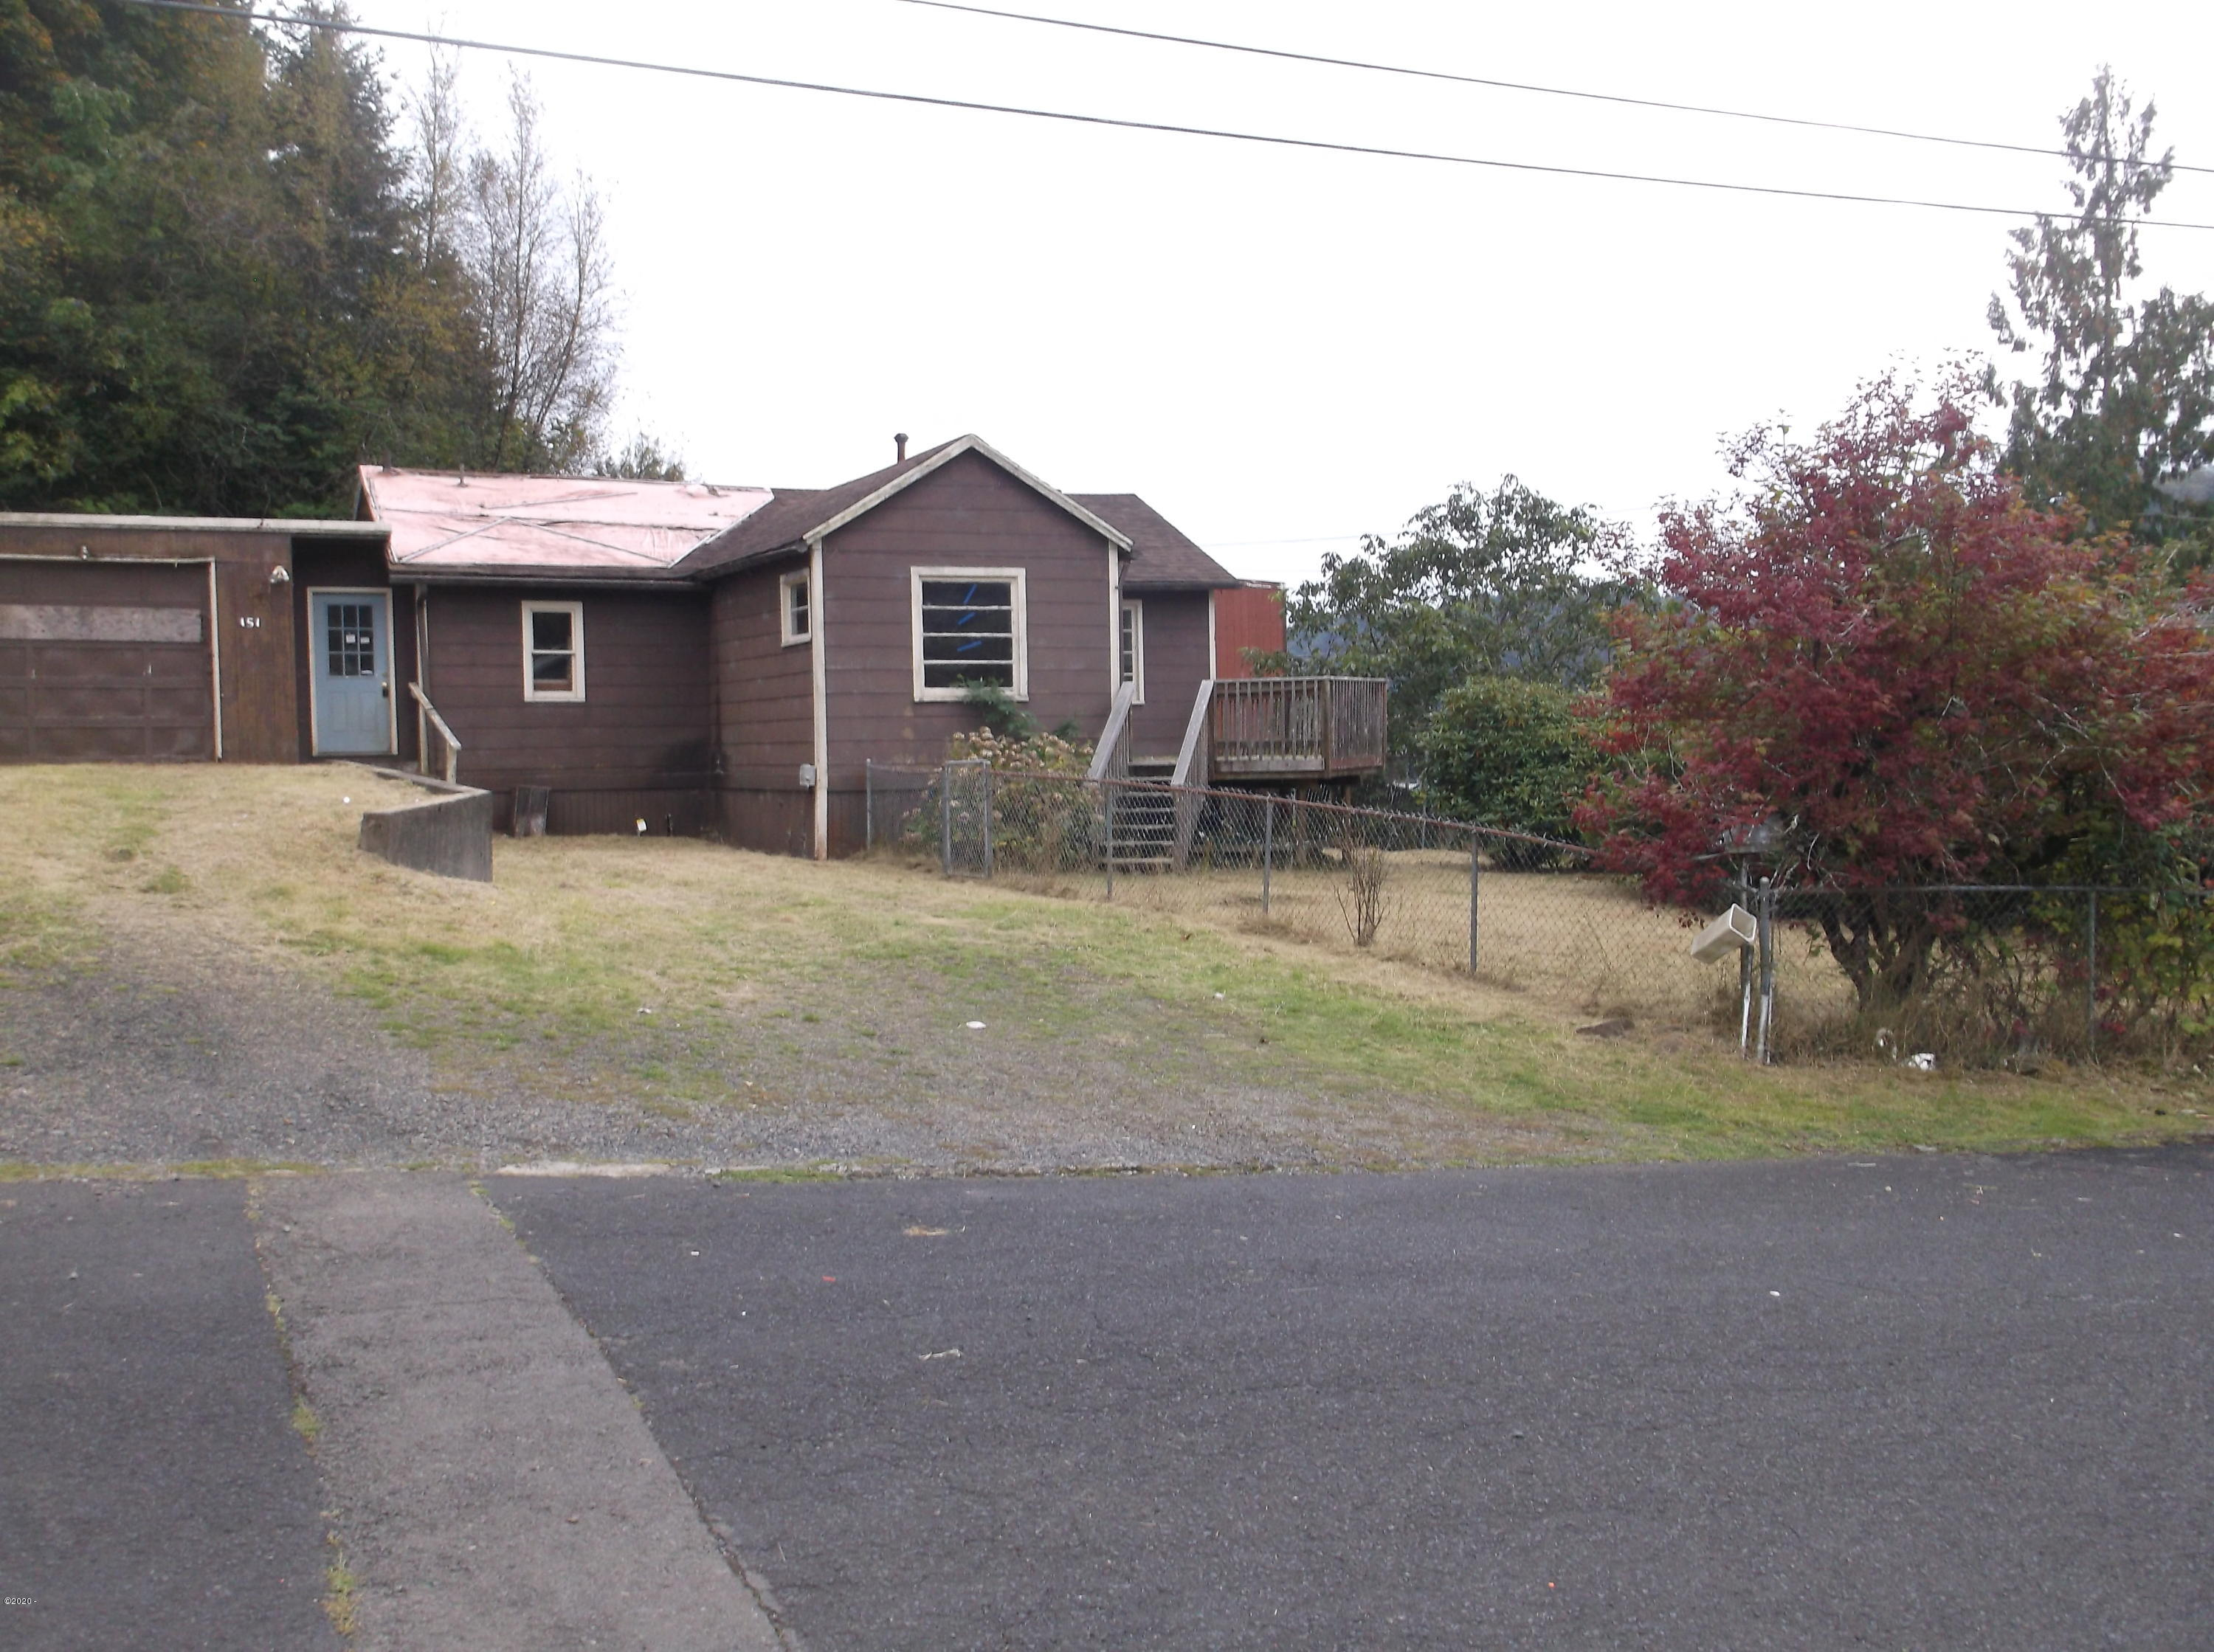 151 NW 9th St, Toledo, OR 97391 - 151 NW A Street